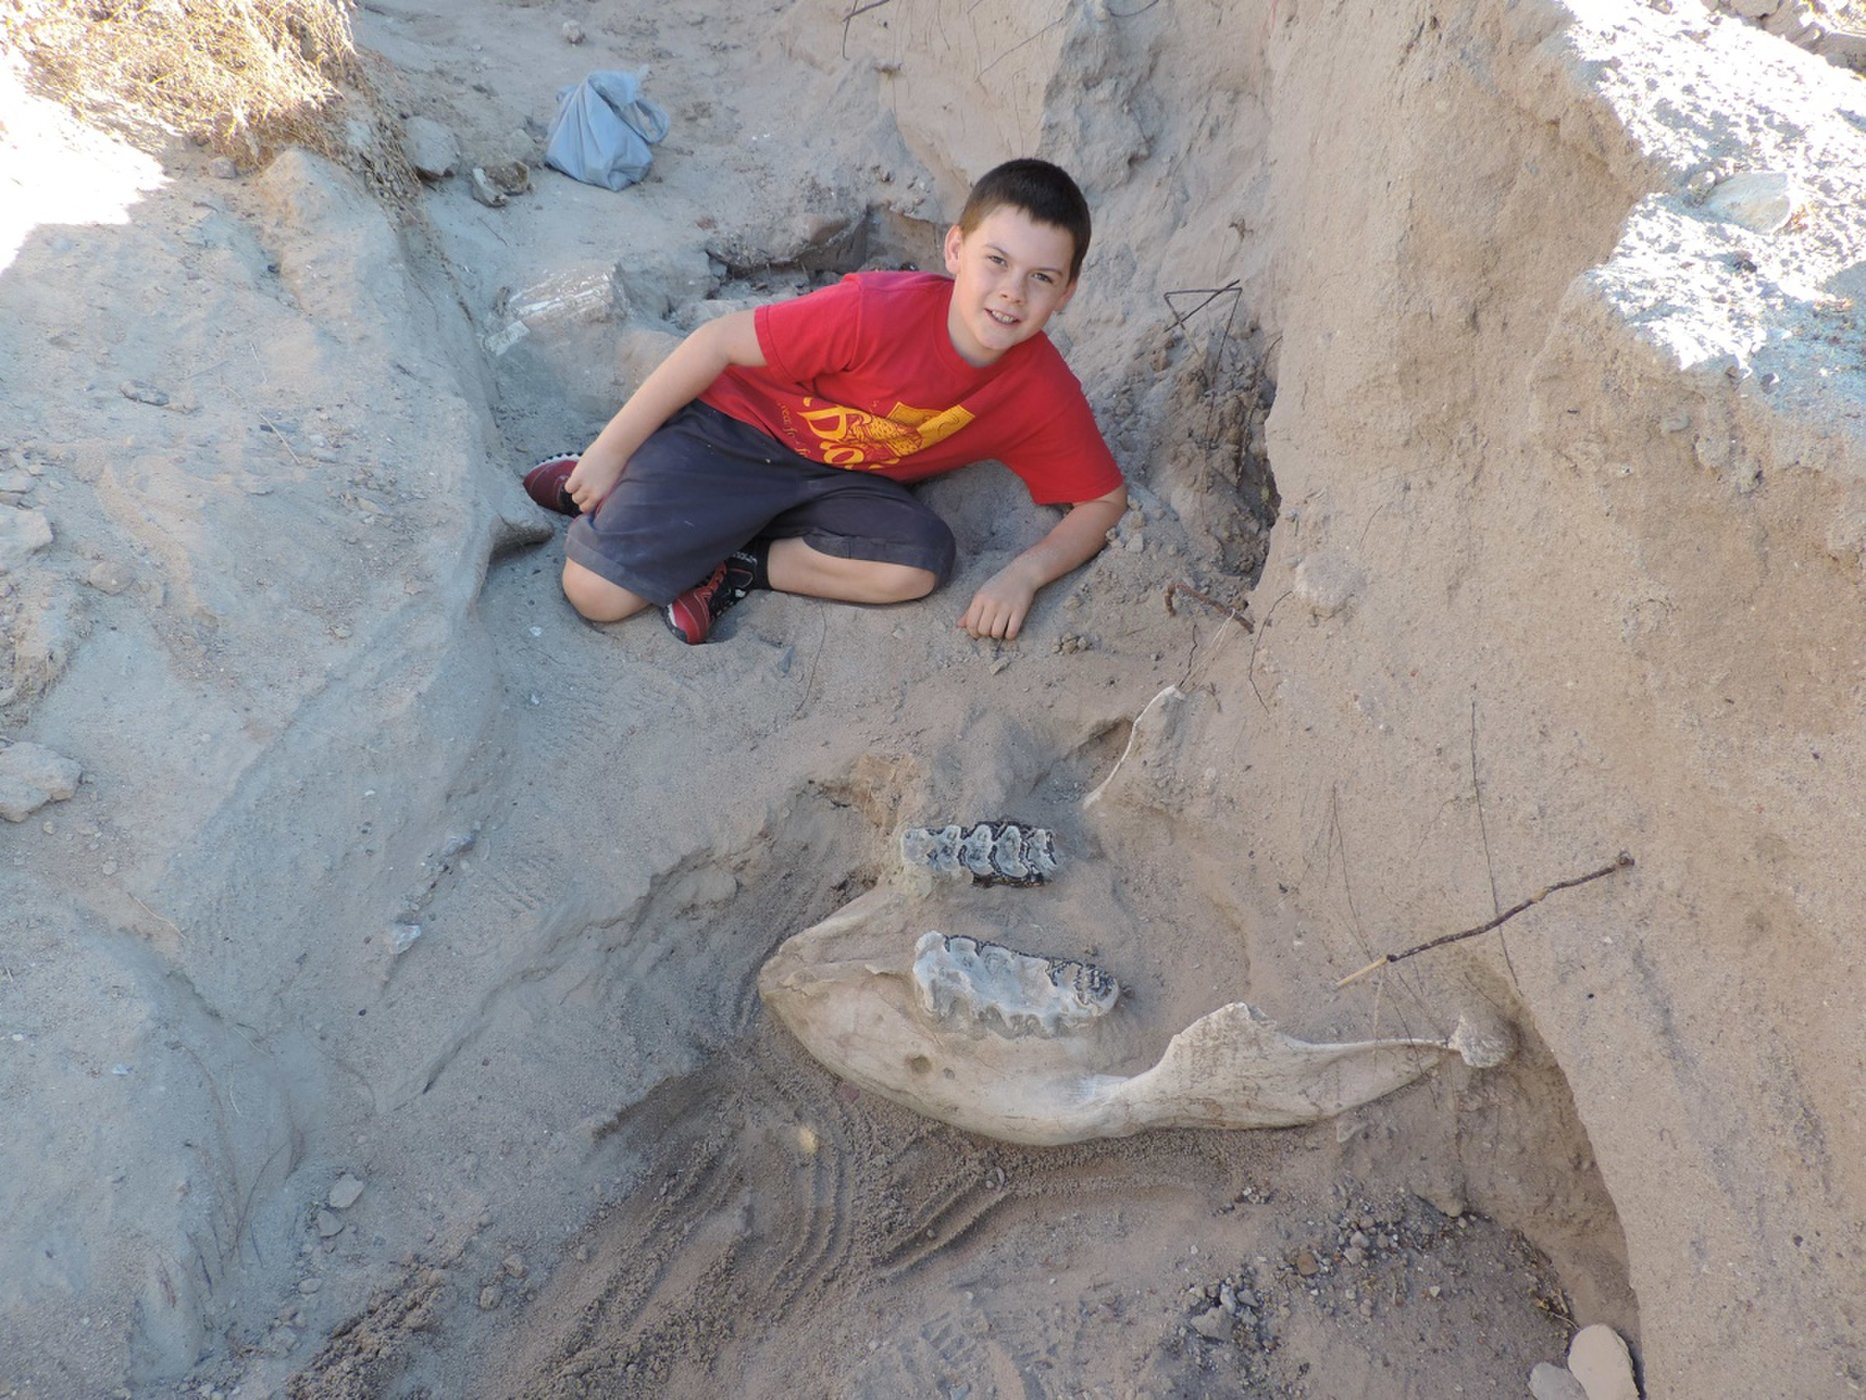 Jude Sparks poses alongside the nearly-excavated stegomastodon skull he tripped over while hiking.